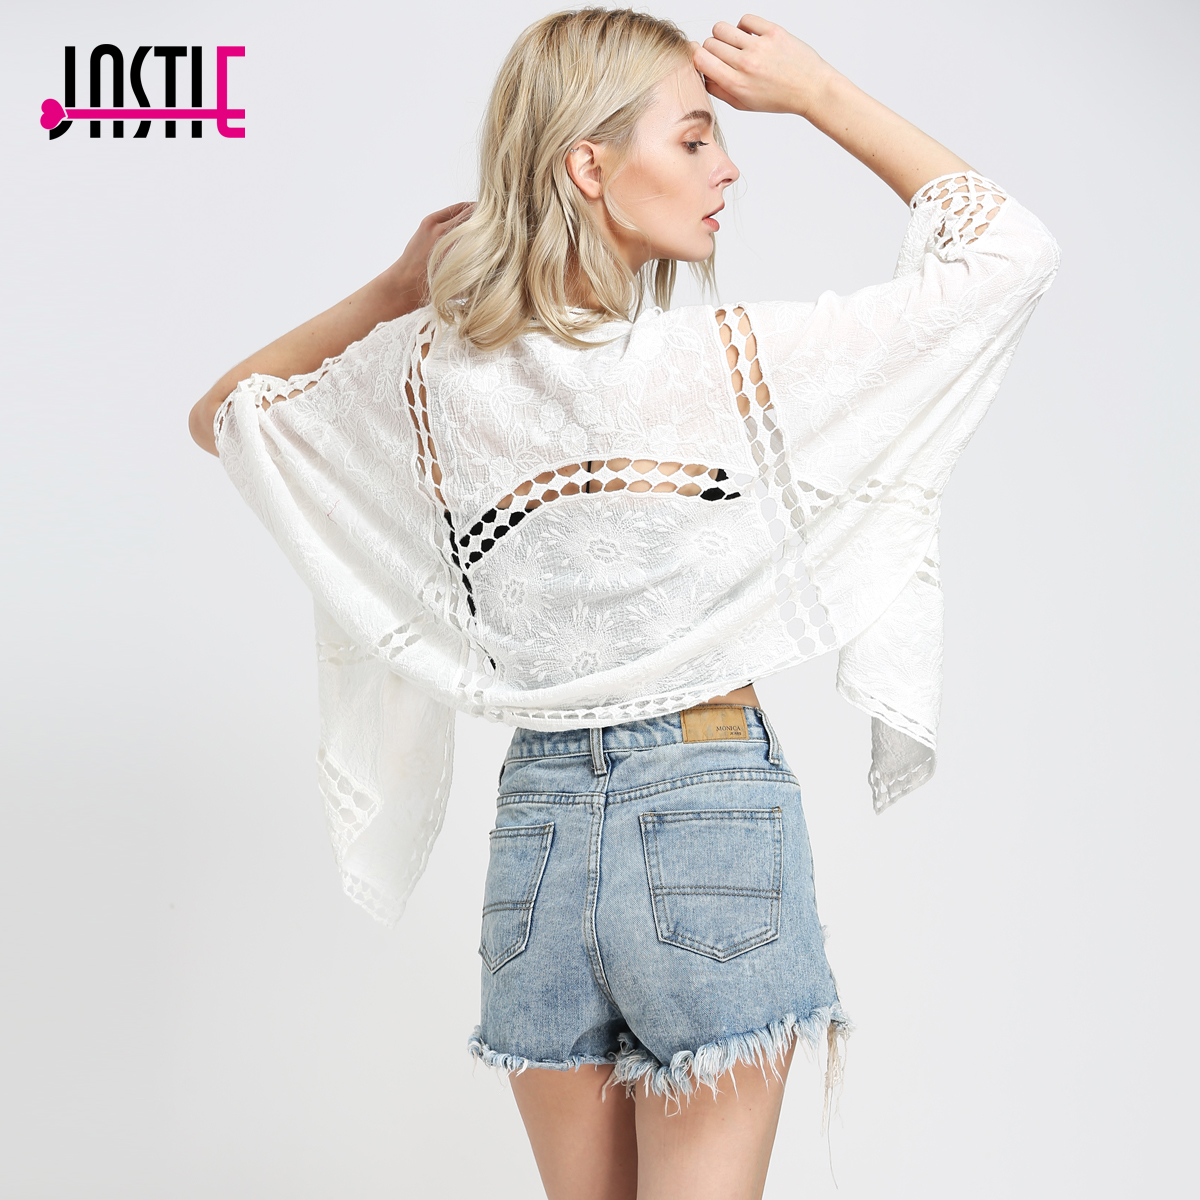 Jastie Boho Hippie Kimono Embroidery Crochet Women Outerwear Top Batwing Sleeves Cover Up Cardigan Casual Beach Jacket Z-90